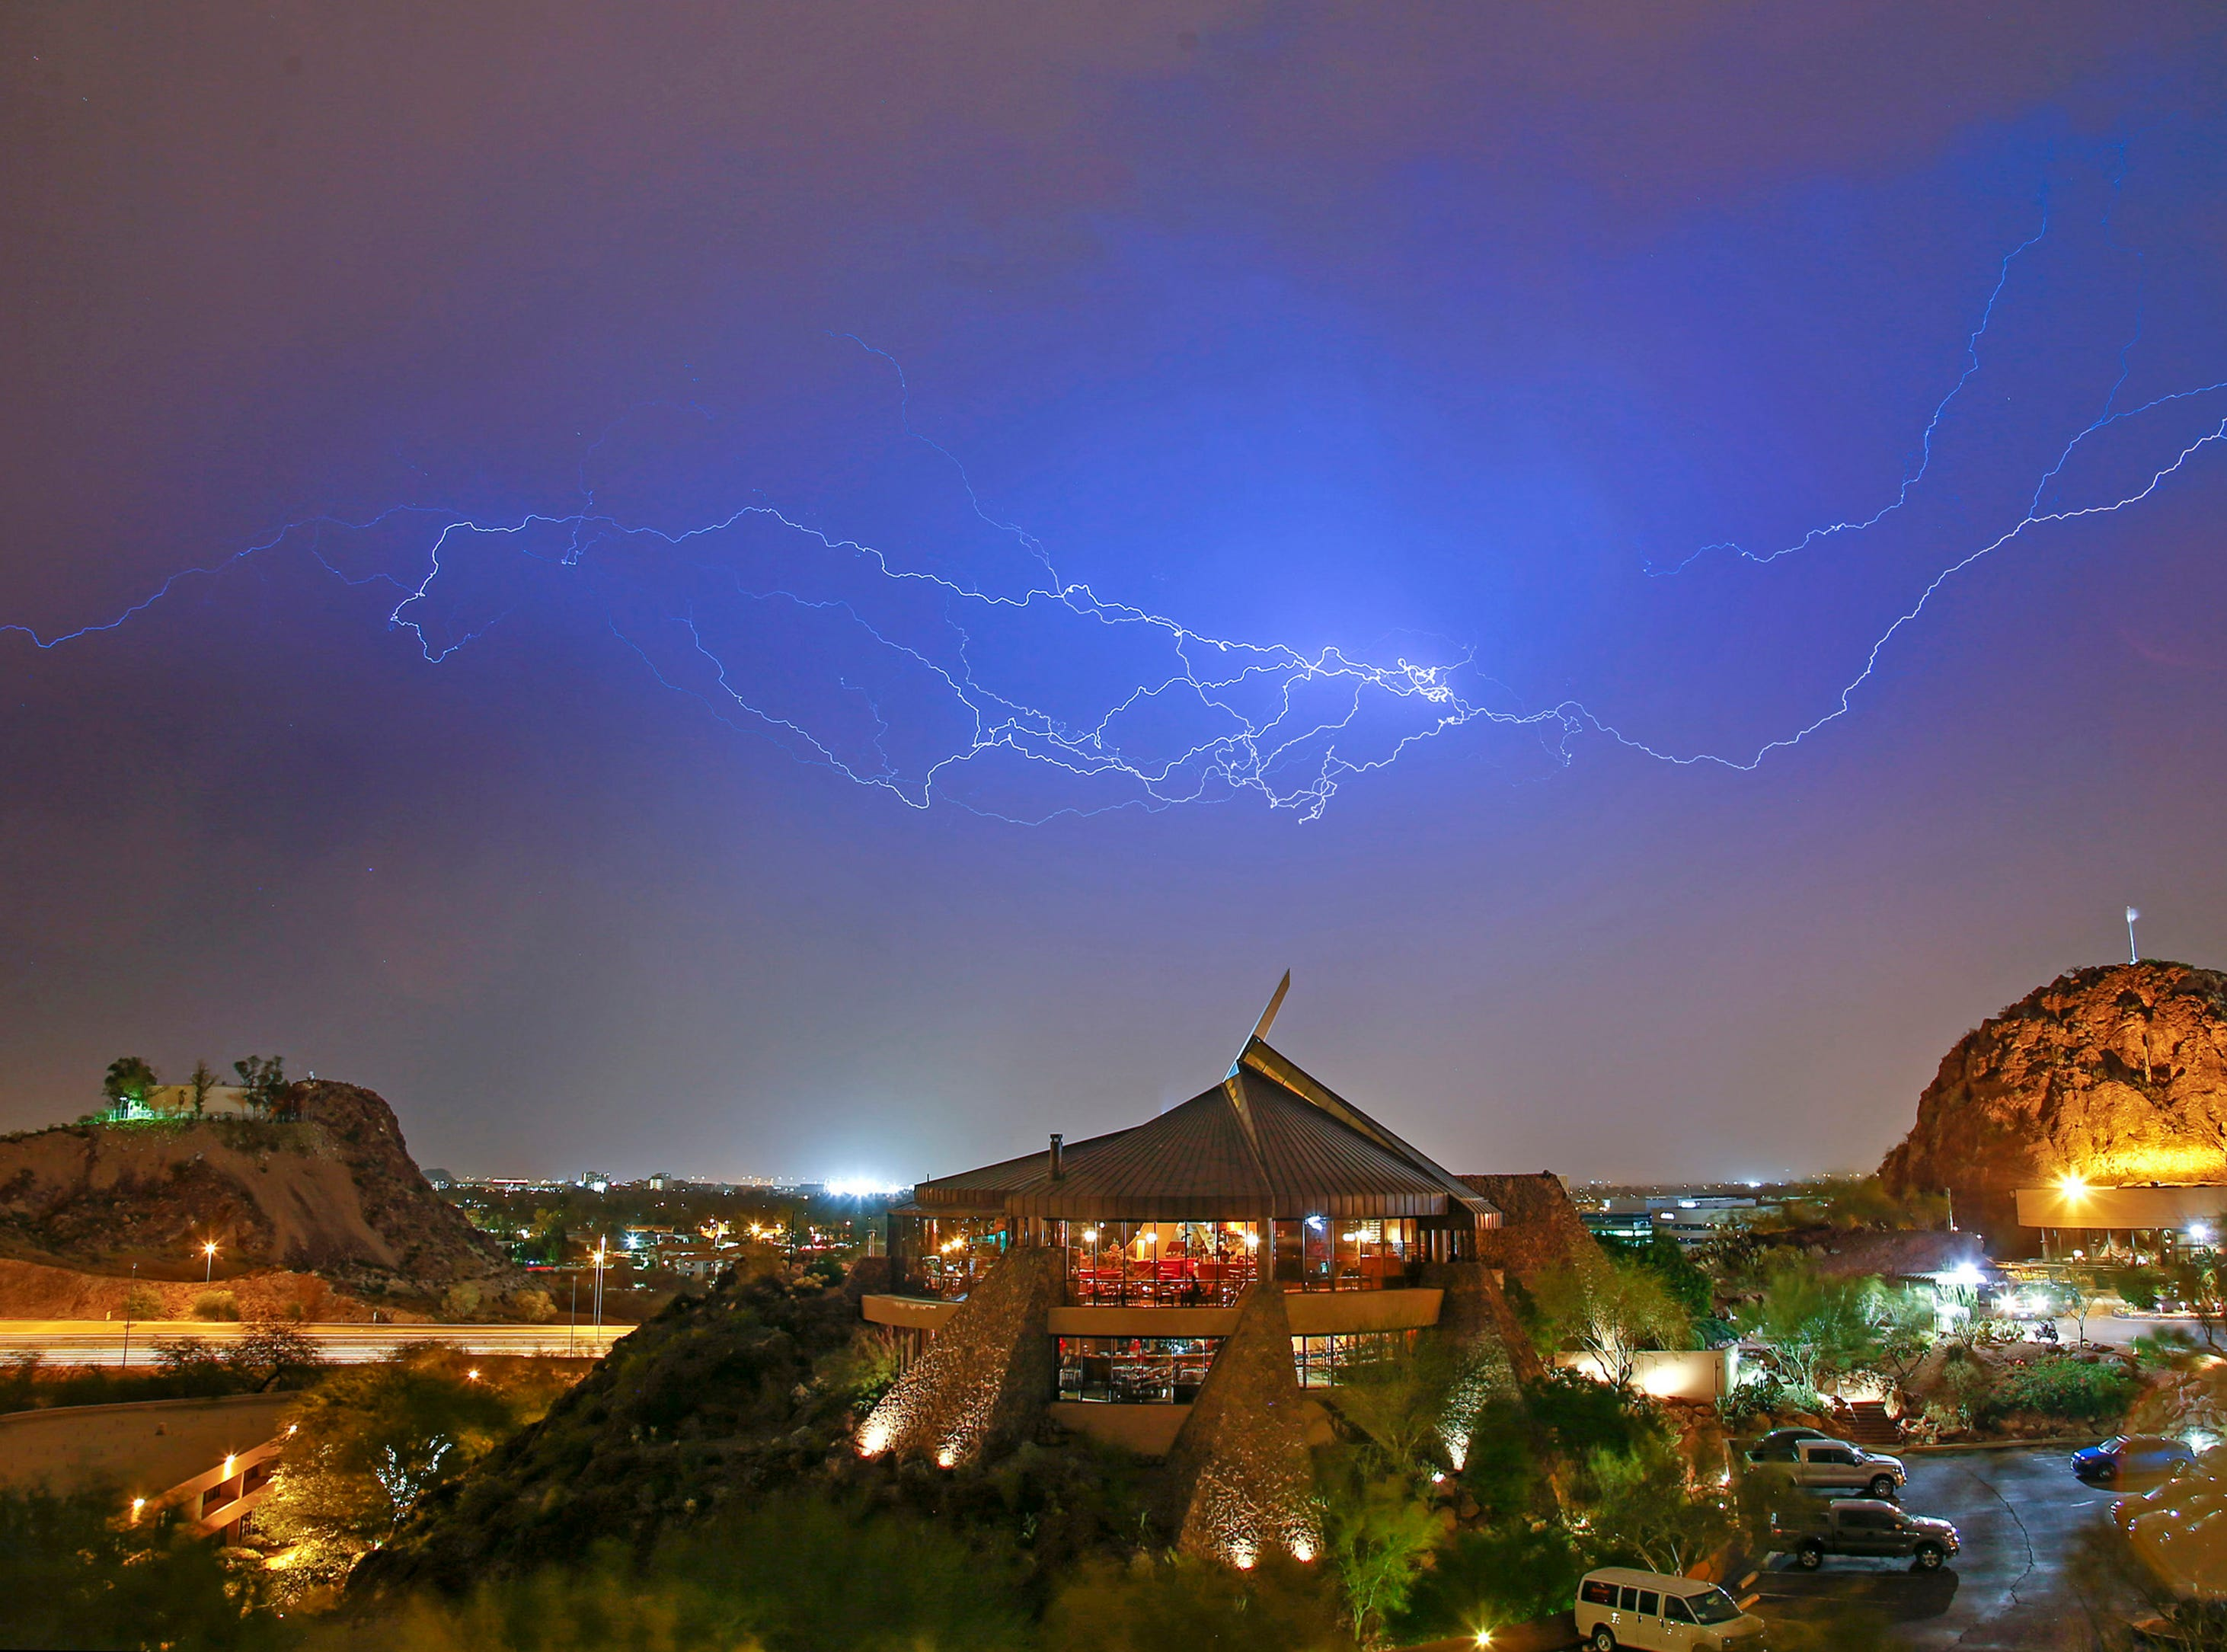 Lightning flashes in the sky above the Phoenix Marriott Tempe at The Buttes in Tempe, Ariz.